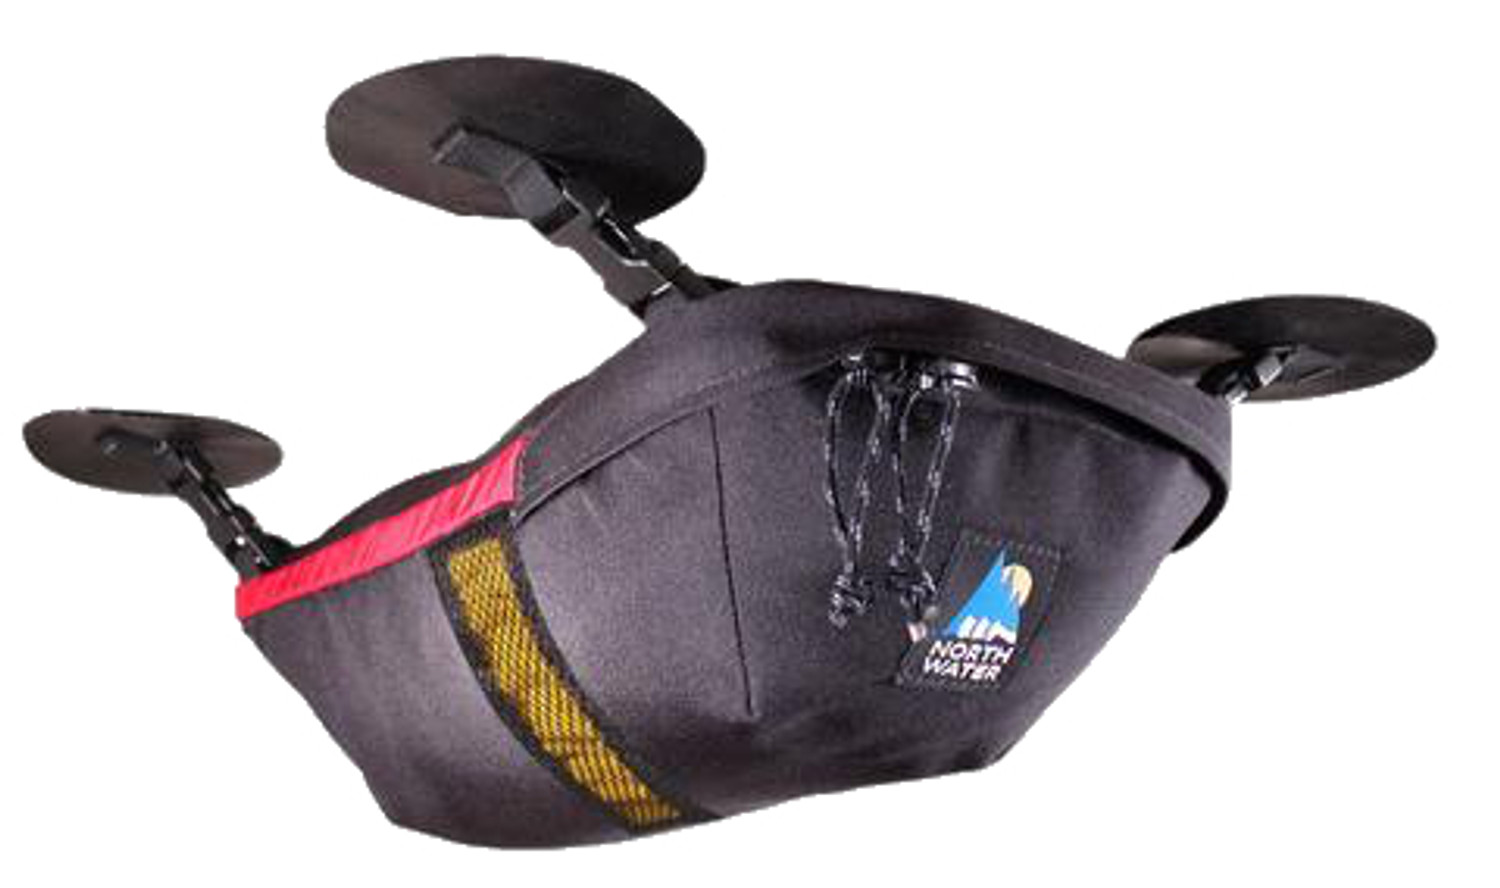 Under Deck Bag for Touring Kayak